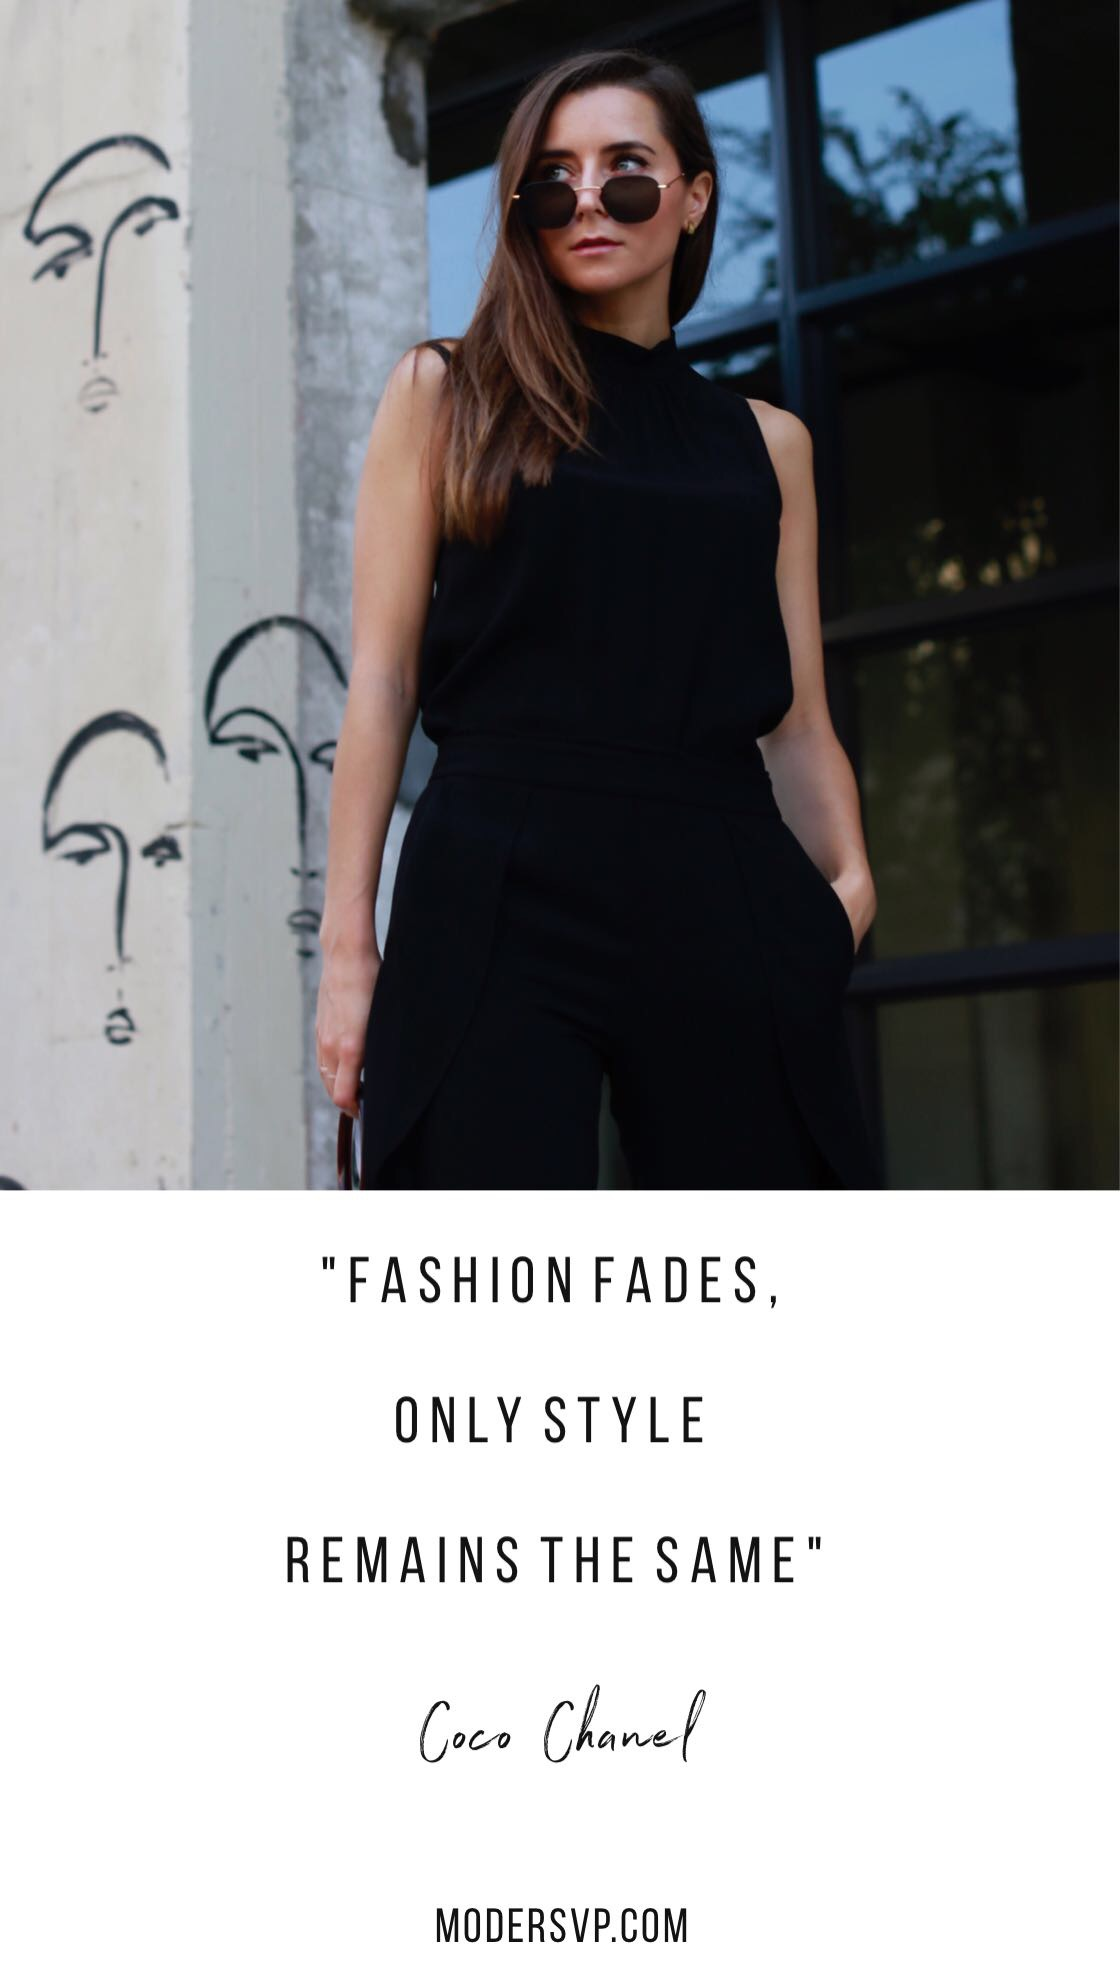 "Best Style quotes - Inspirational Fashion Quotes - ""Fashion fades, only style is the same"" Coco Chanel - Read more style quotes from Anna Wintour, Diane Von Furstenberg, Coco Chanel and other fashion designers and style icons on Houseofcomil.com"